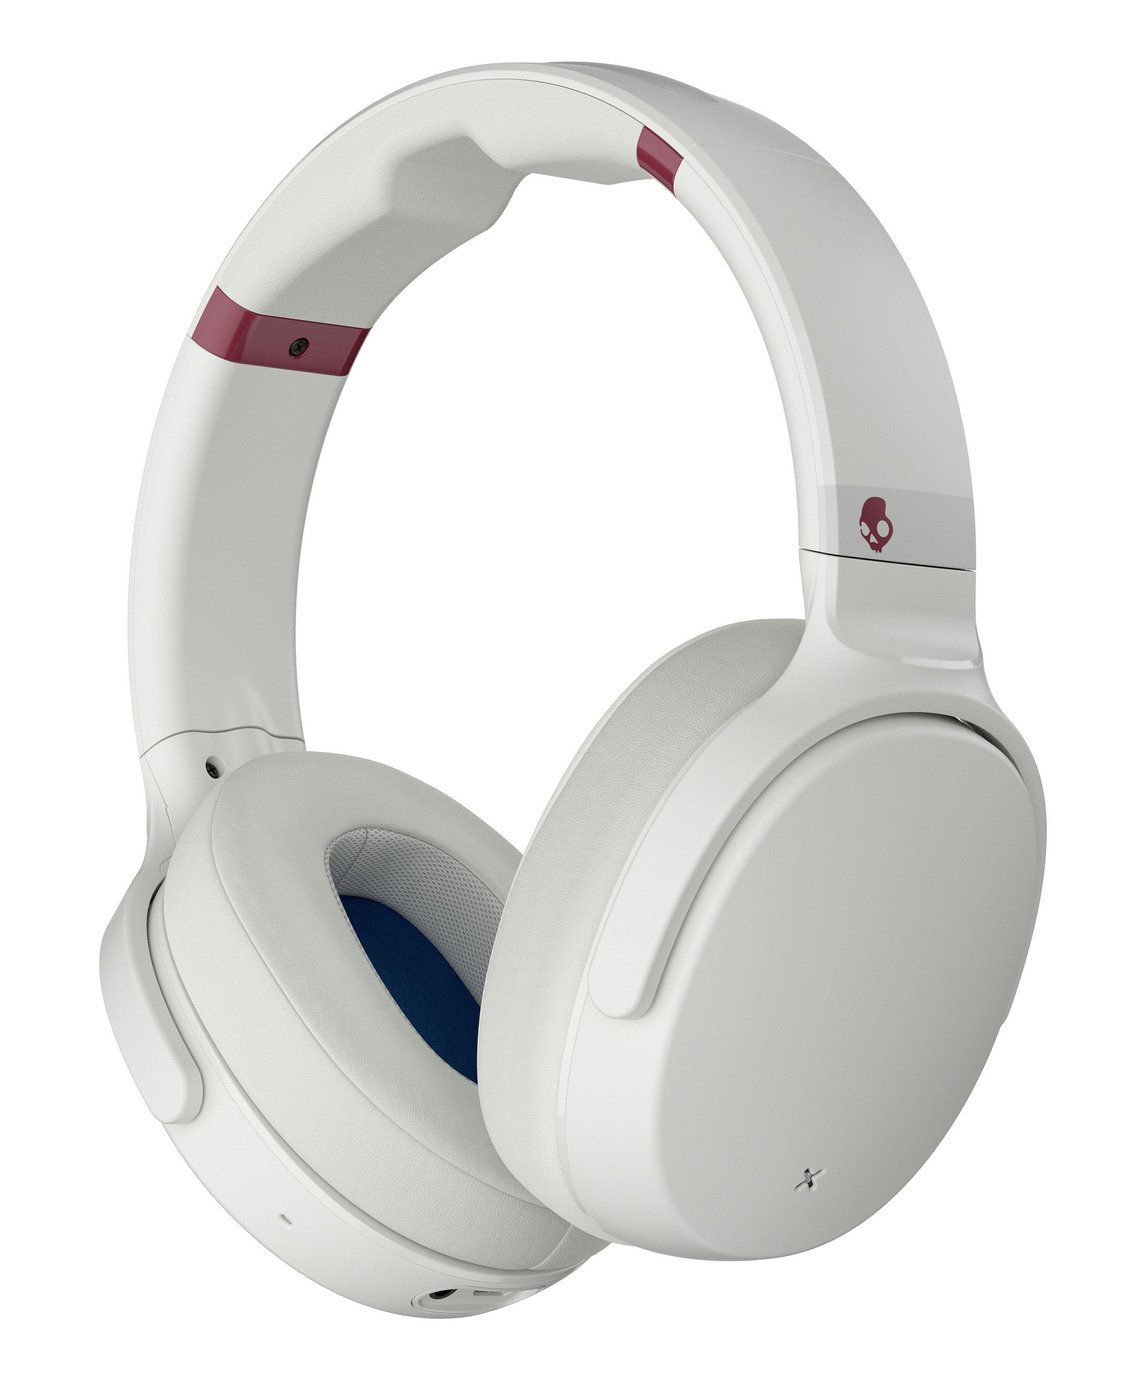 Skullcandy Venue Over-Ear Wireless Headphones - White